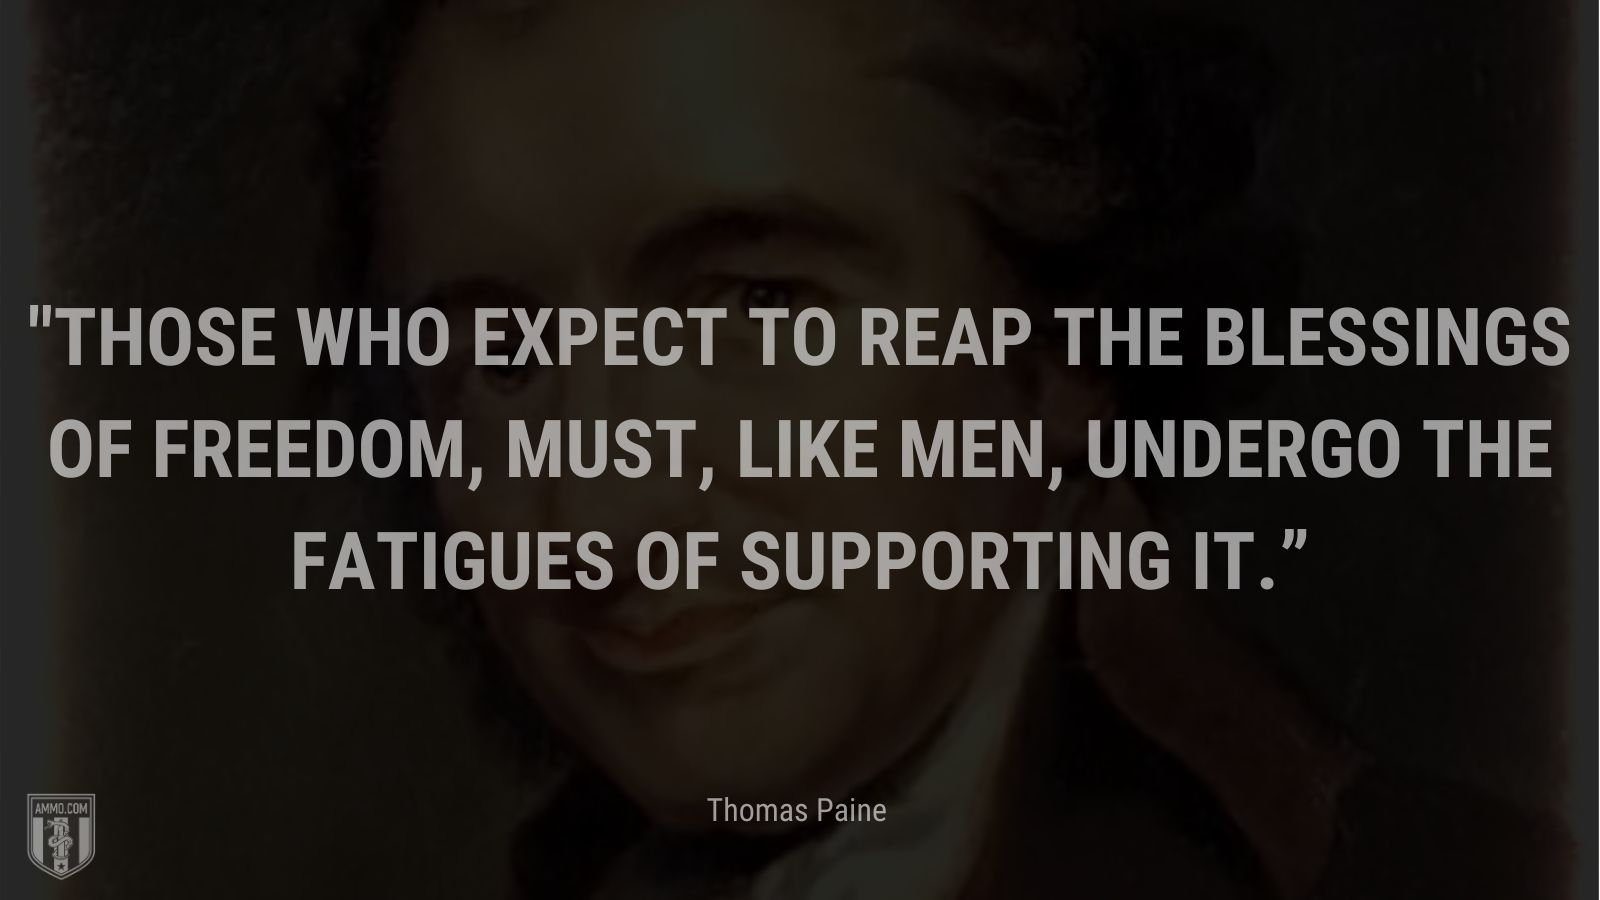 """""""Those who expect to reap the blessings of freedom, must, like men, undergo the fatigues of supporting it."""" - Thomas Paines"""